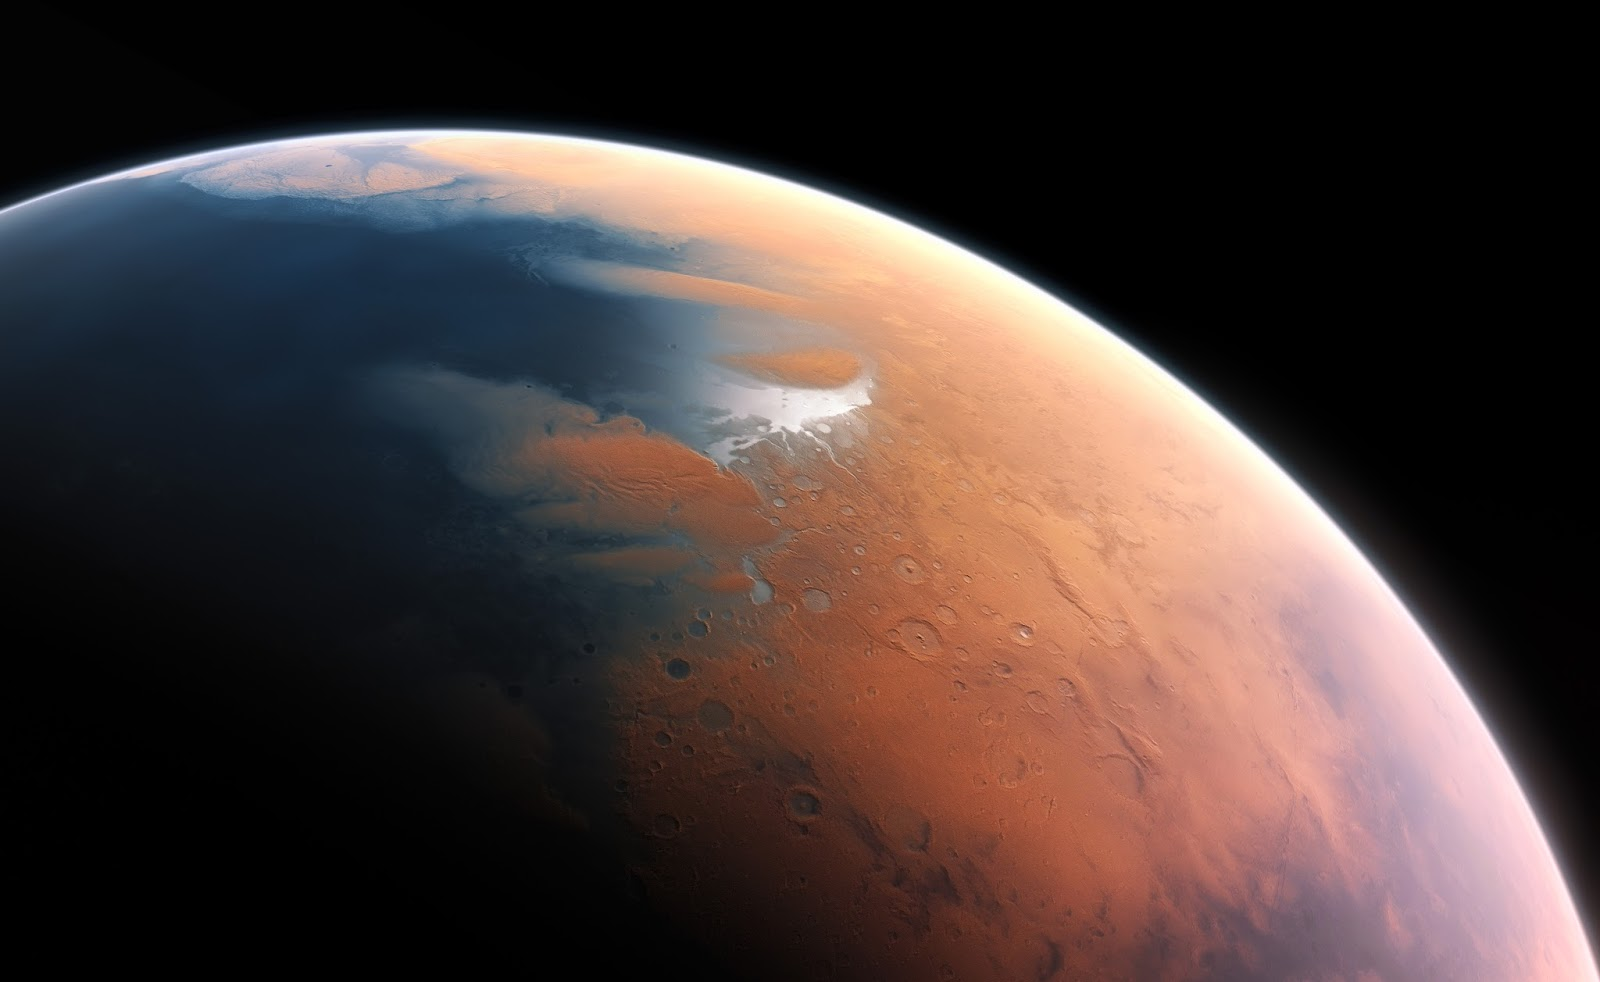 Mars four billion years ago - The Planet that Lost an Ocean's Worth of Water